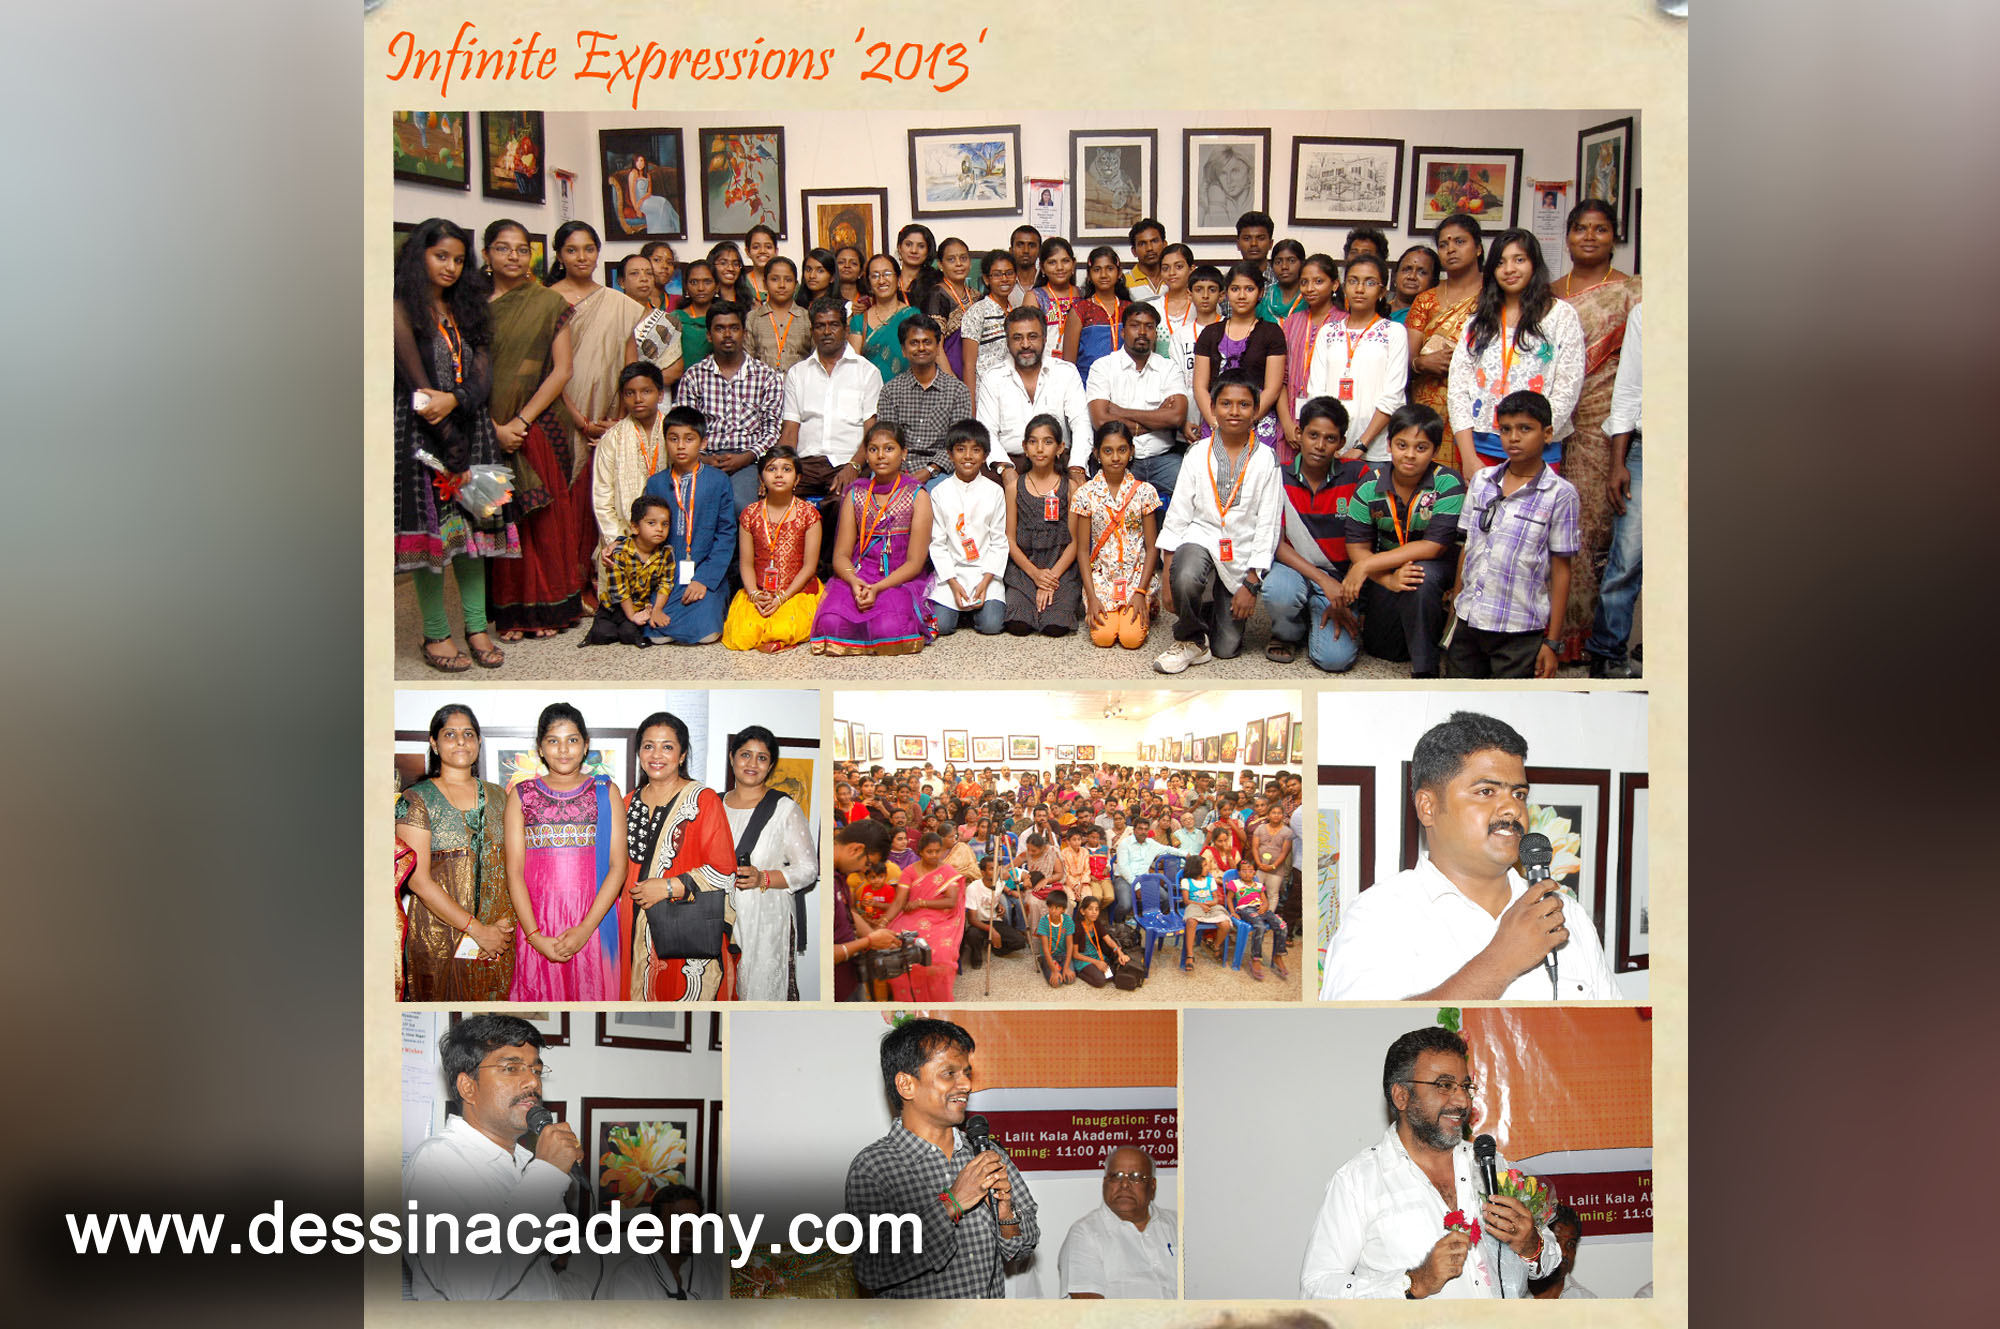 Dessin School of arts Event Gallery 3, sketching Coaching For Kids in Anna Nagar East L BlockDessin School of Arts